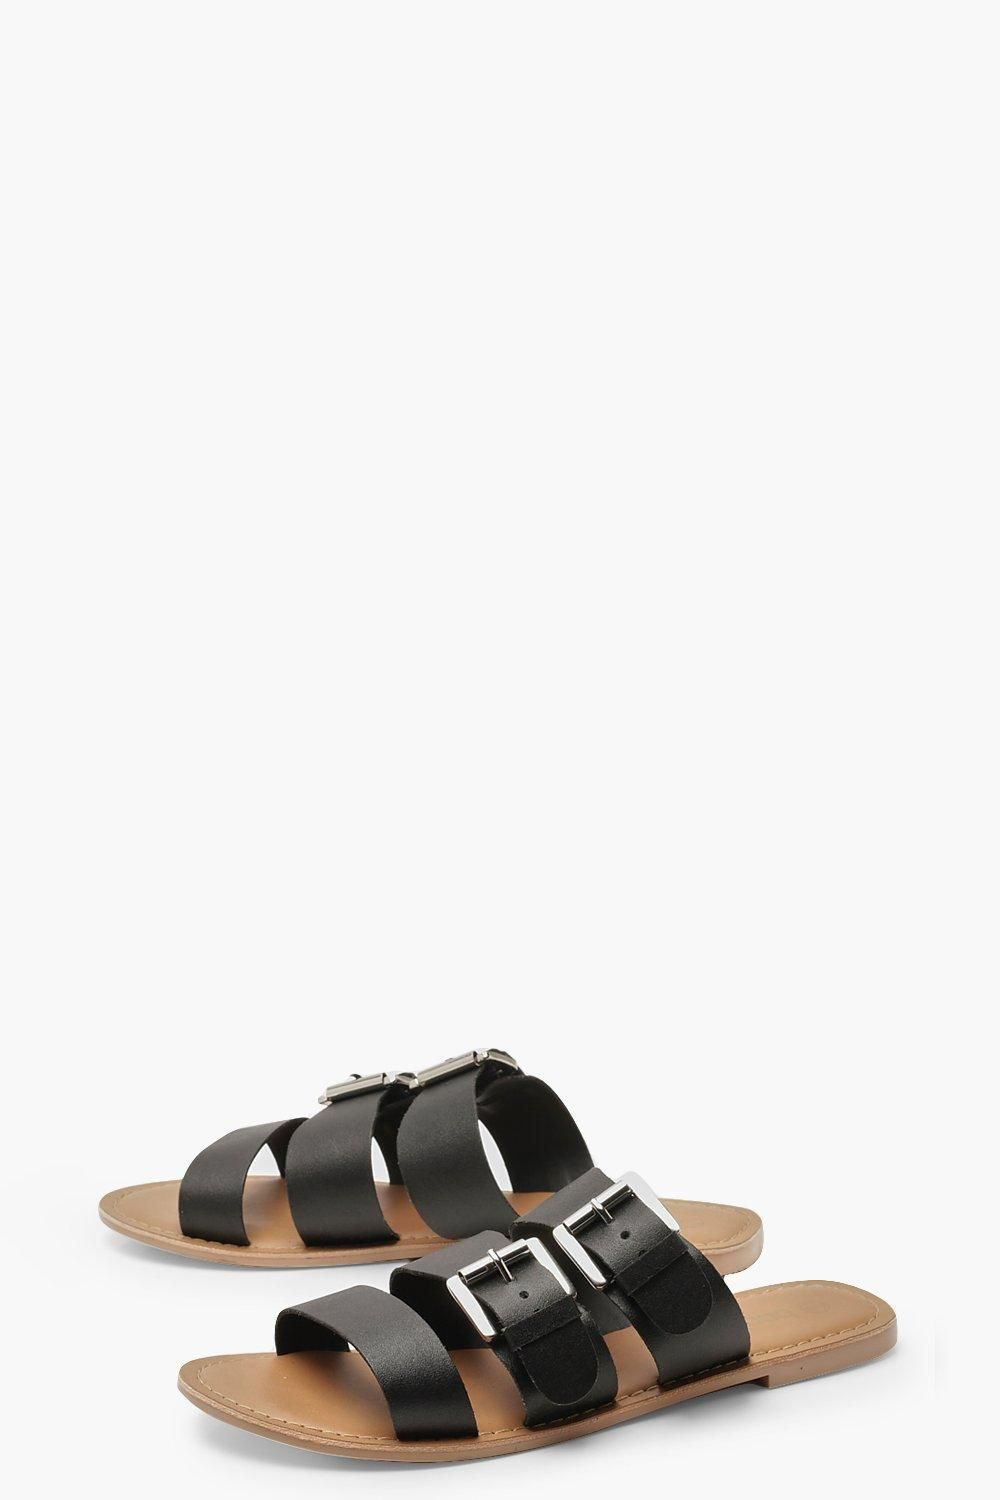 incredible prices online retailer various design Womens Wide Fit Leather Buckle Sliders - black - 5 | Jelly sandals ...